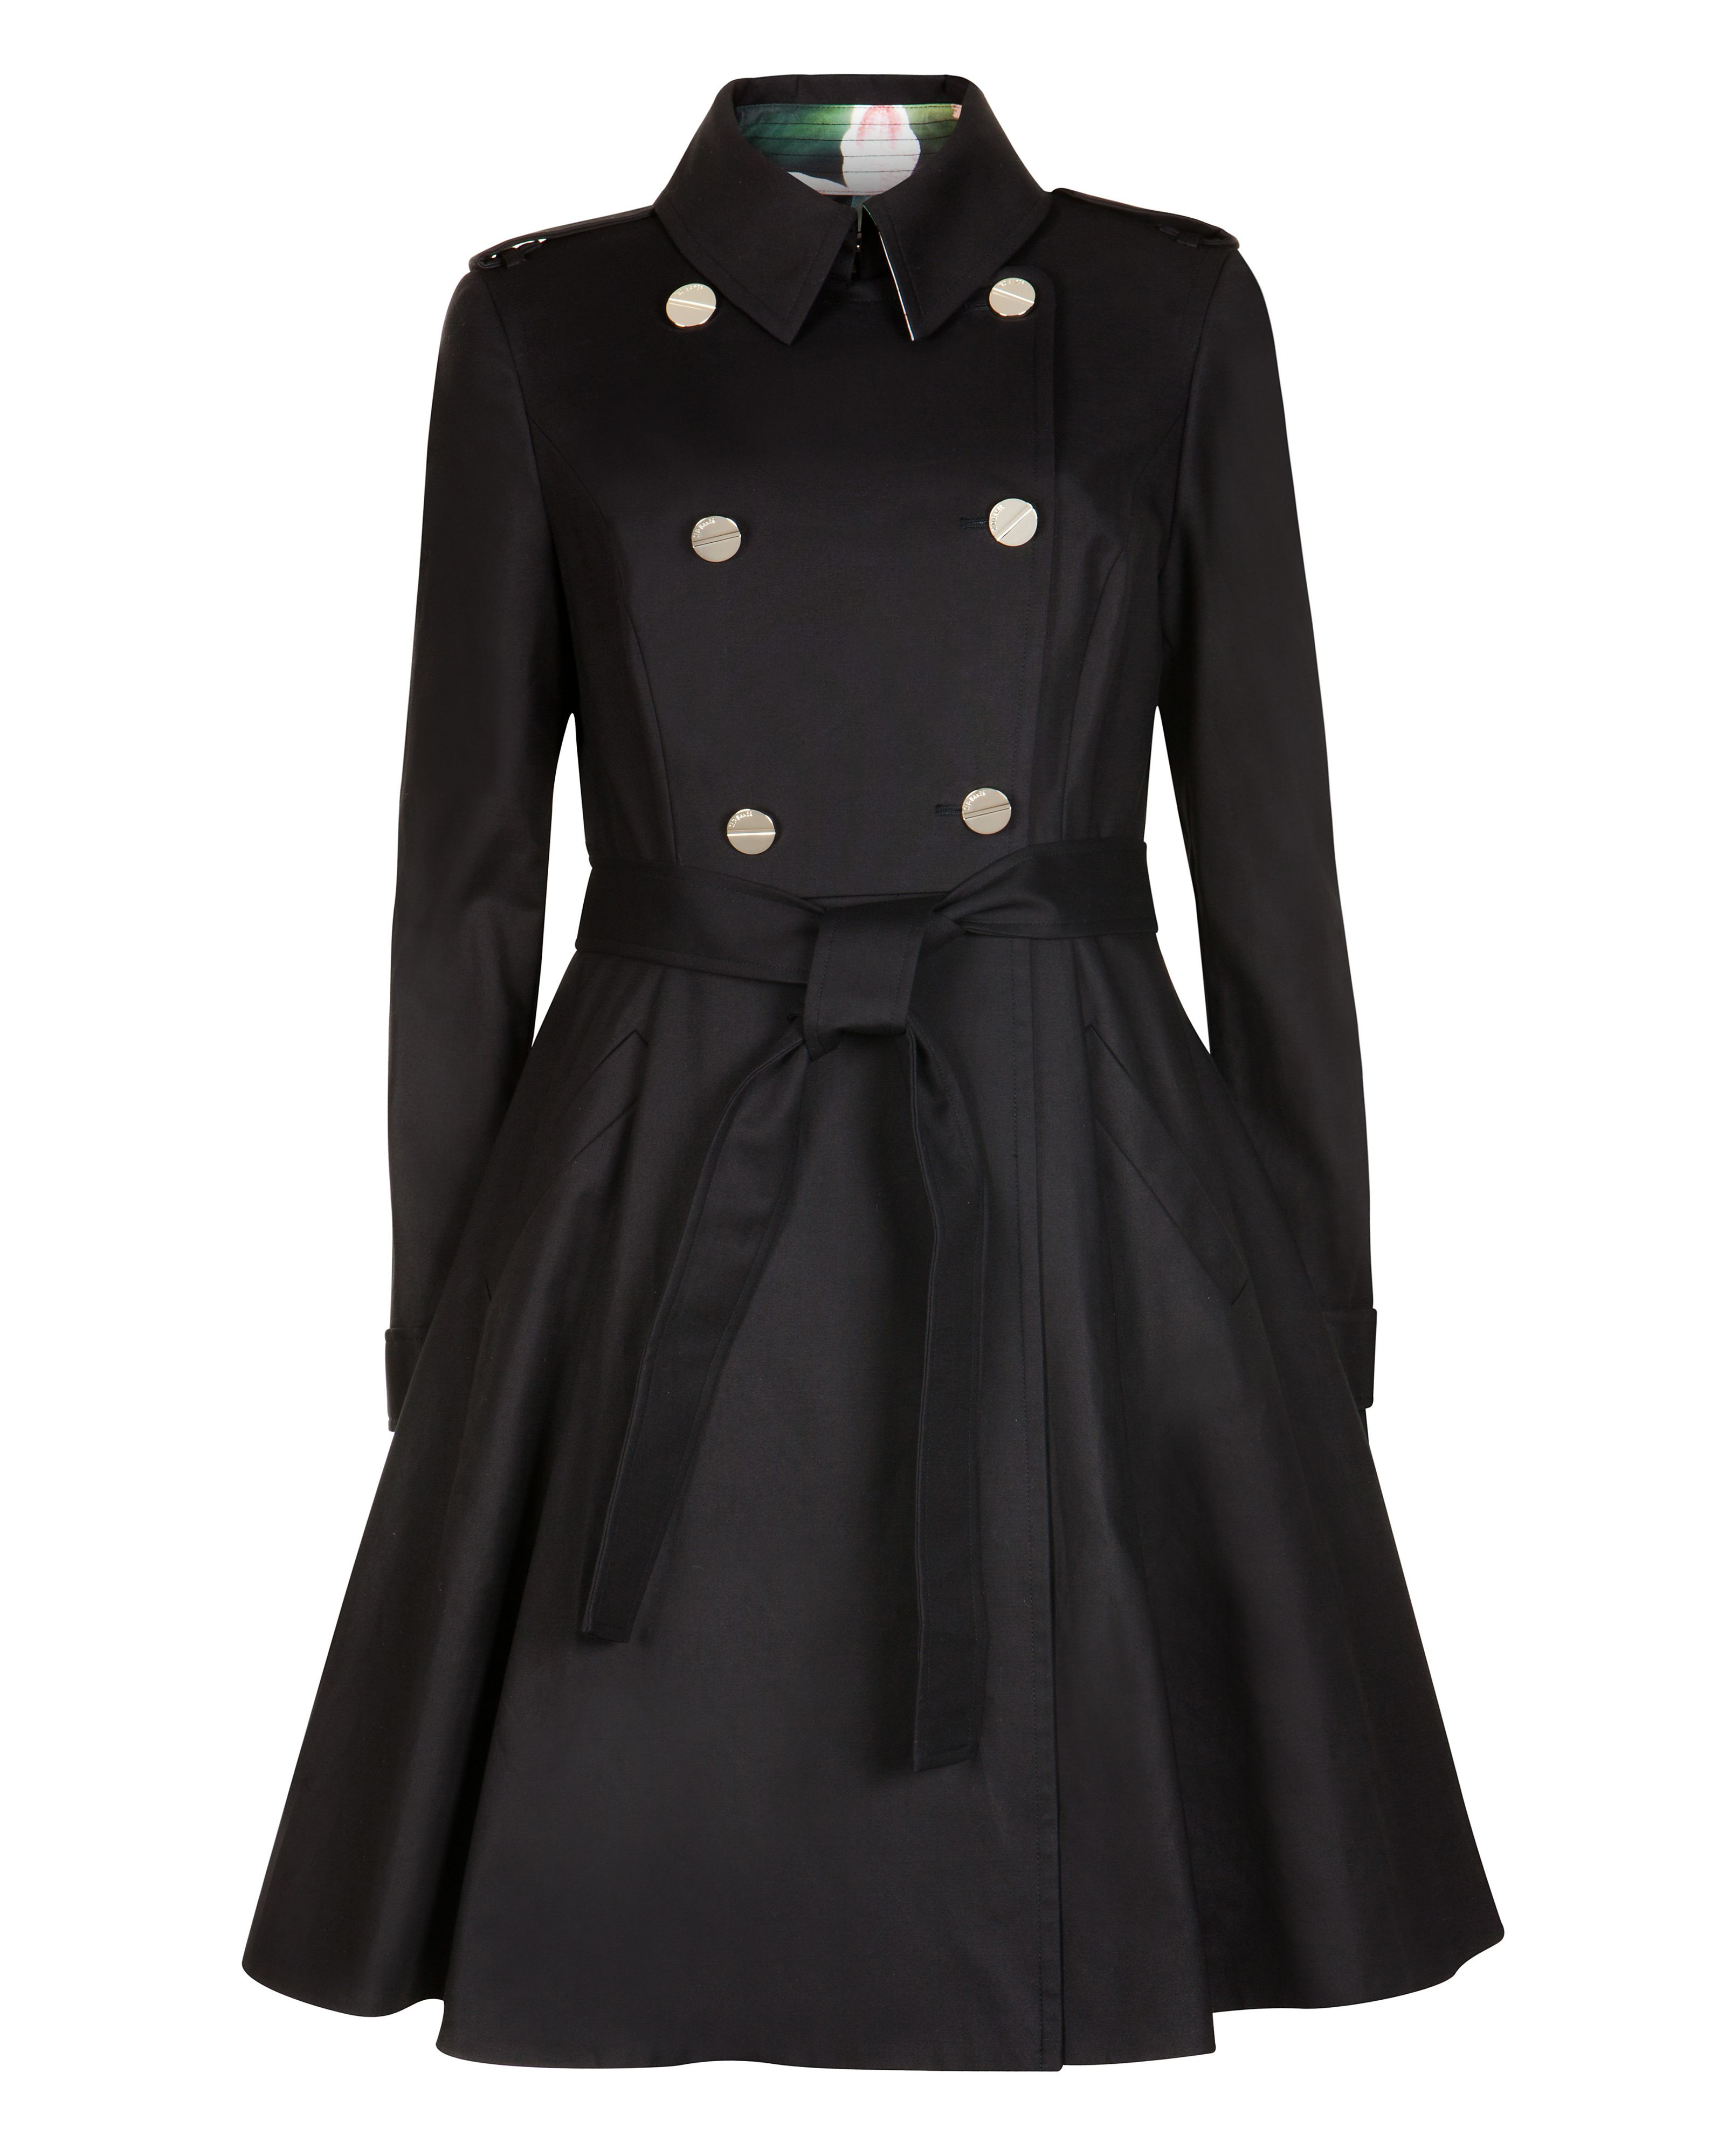 Mckenzy flared skirt trench coat